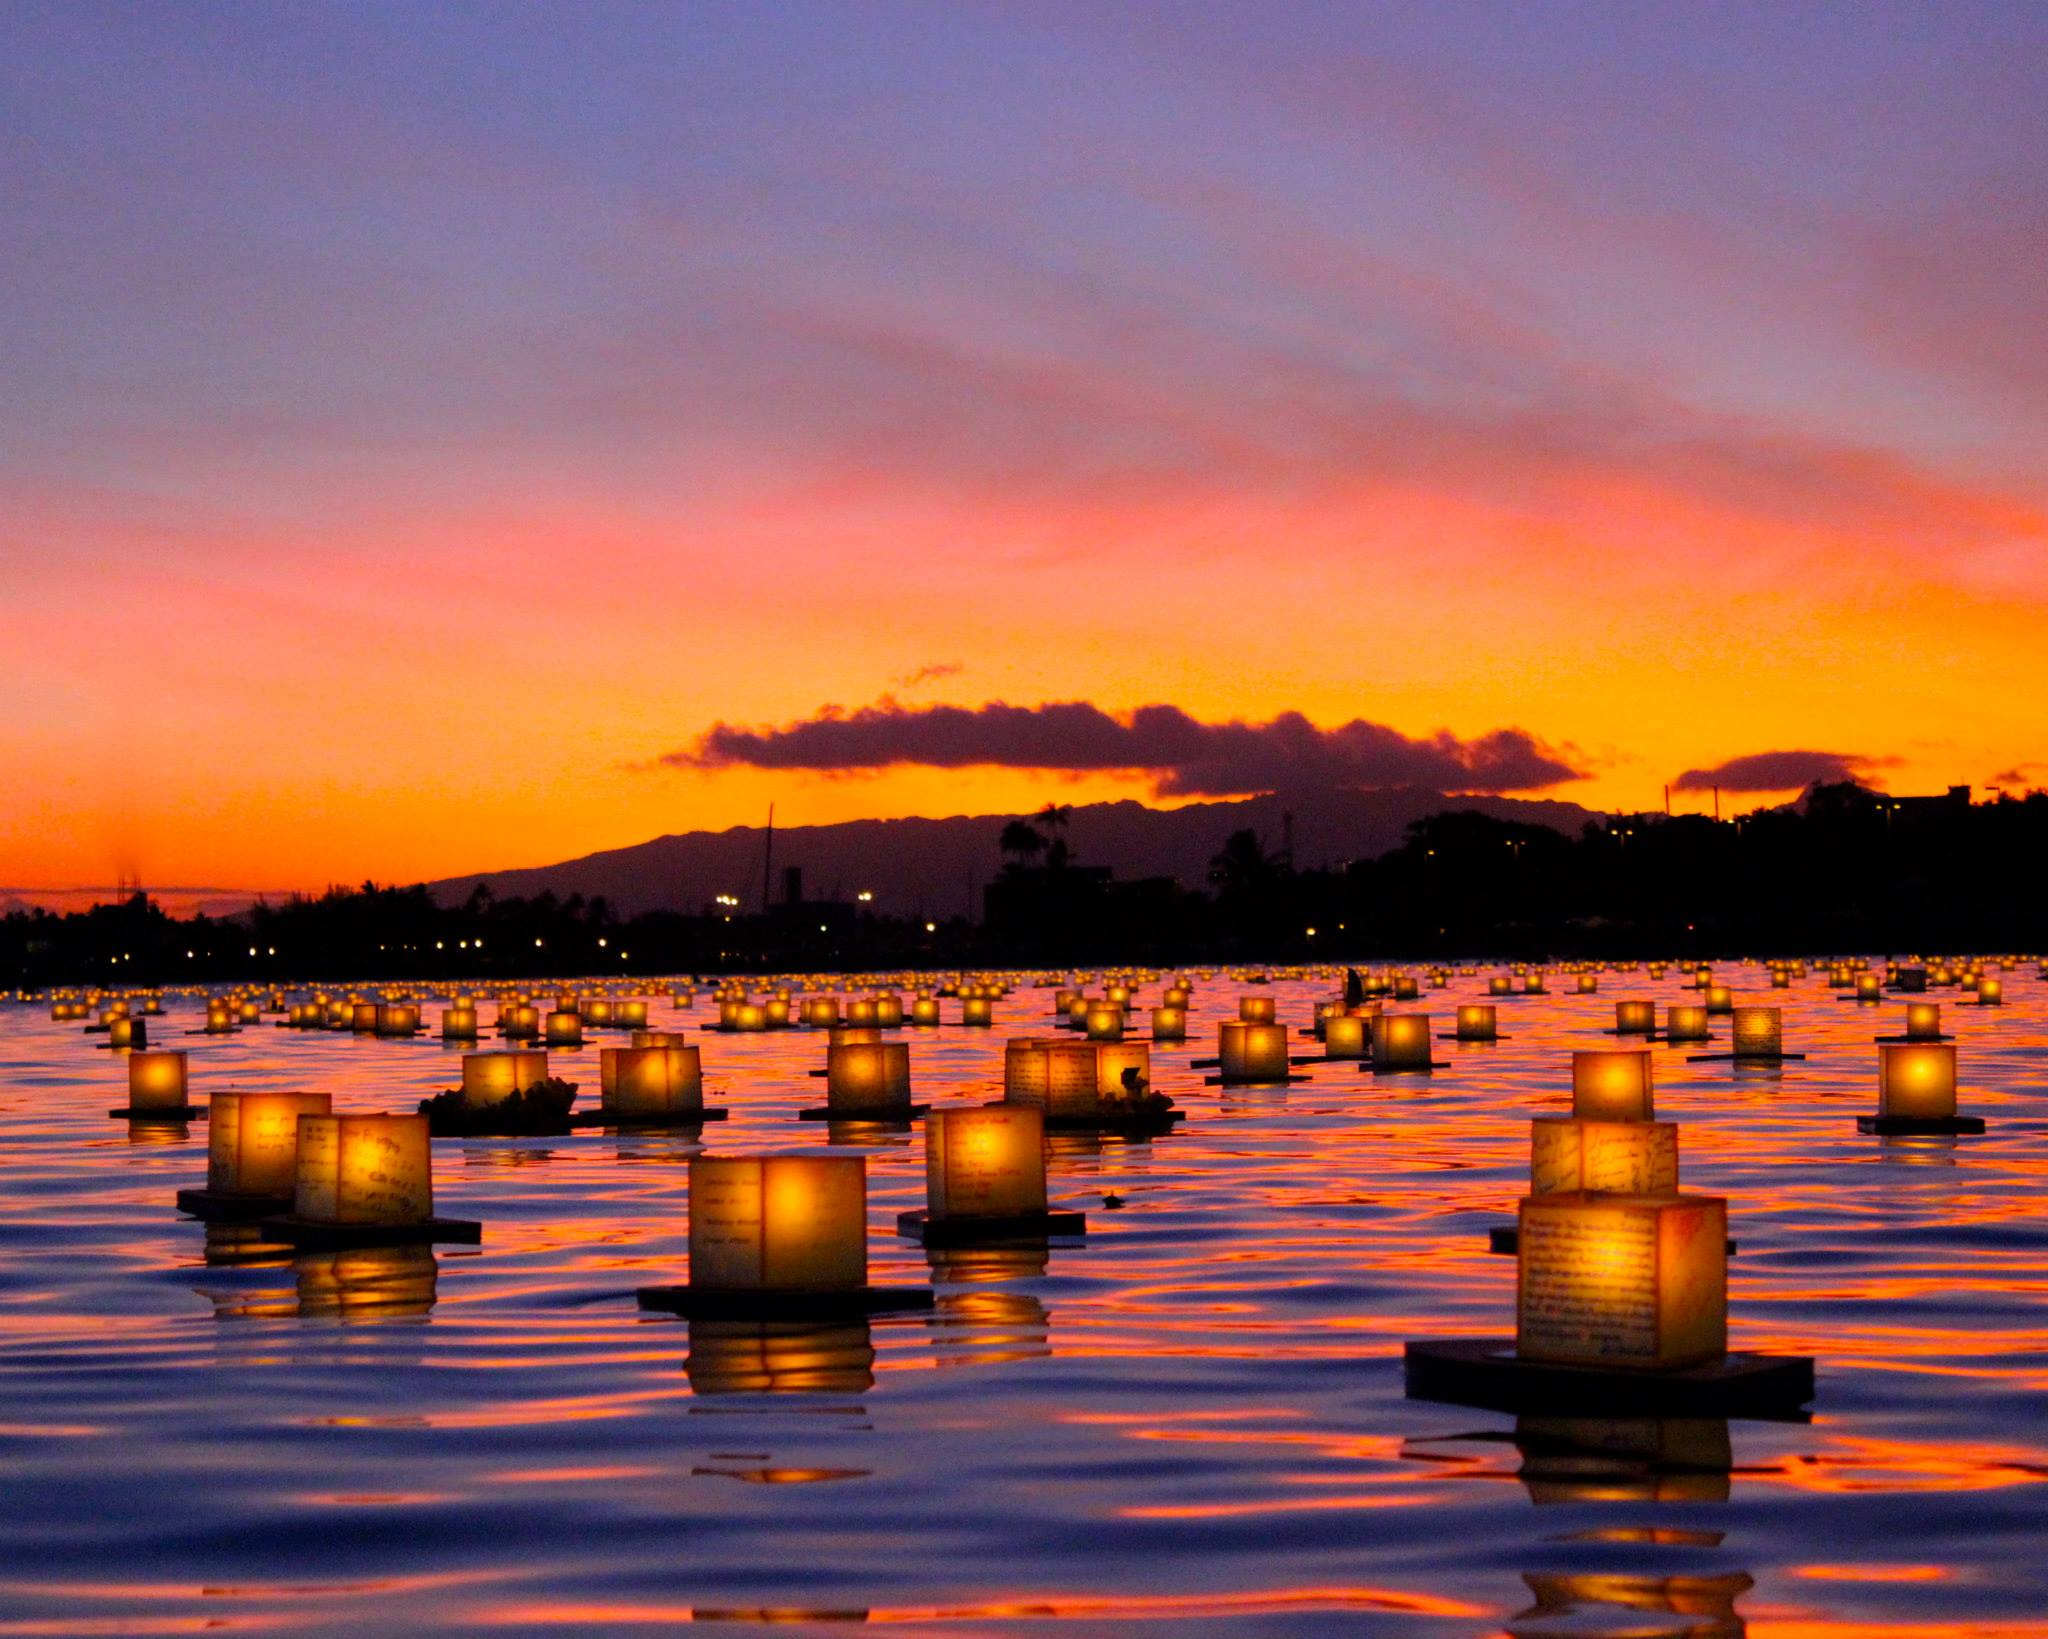 Lanterns Lit In The Harbour Of Waikiki Honolulu Hawaii In Memory Of The Soldiers Who Lost Their Life In Wold War 2 Desktop Background